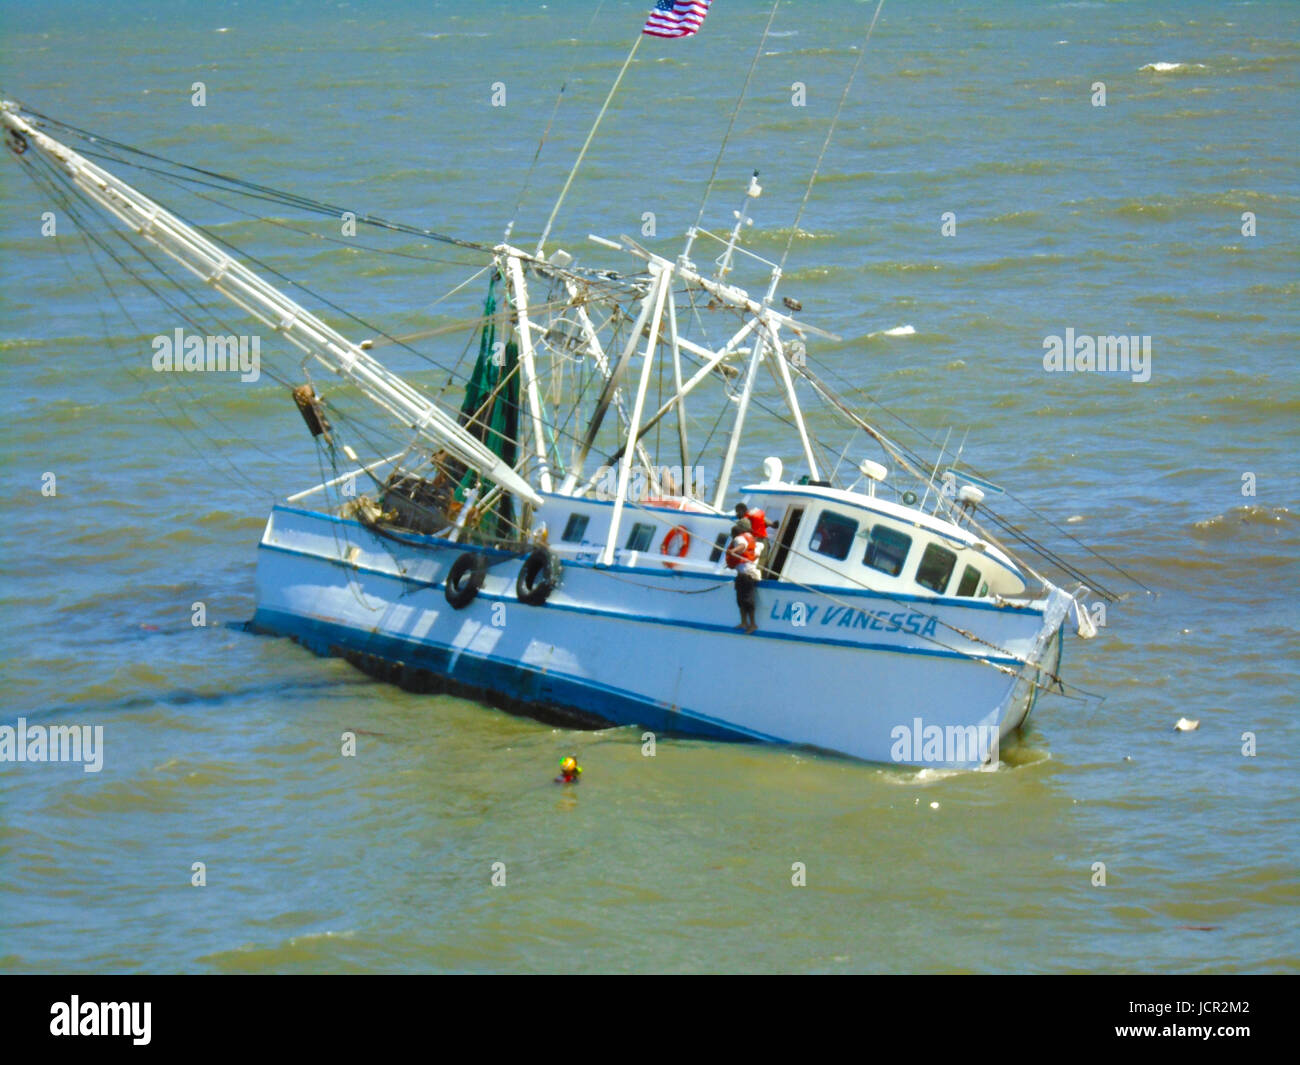 U.S. Coast Guard officers rescue three fishermen from the sinking 73-foot shrimp boat Lady Vanessa May 18, 2017 - Stock Image